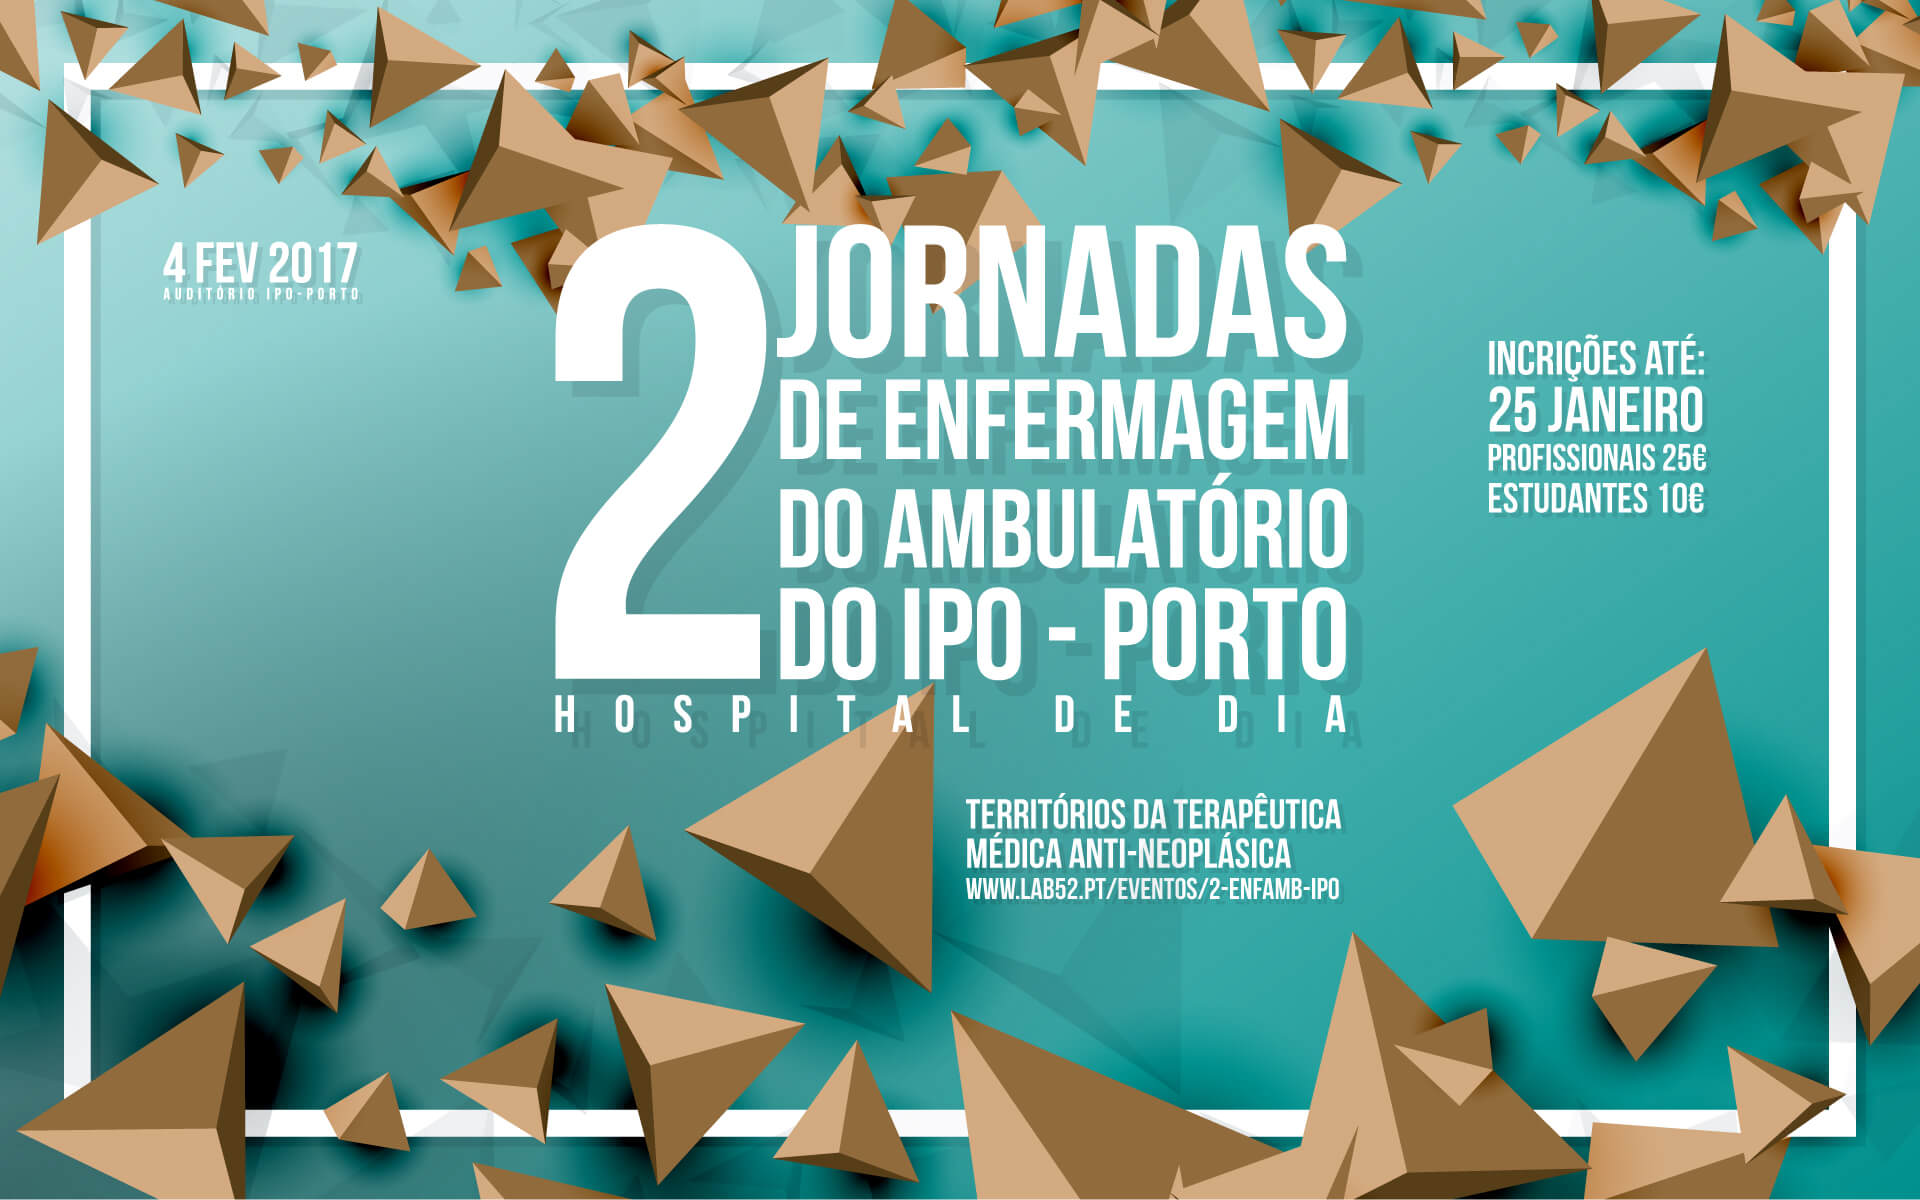 II Jornadas de Enfermagem do Ambulatório do IPO-Porto